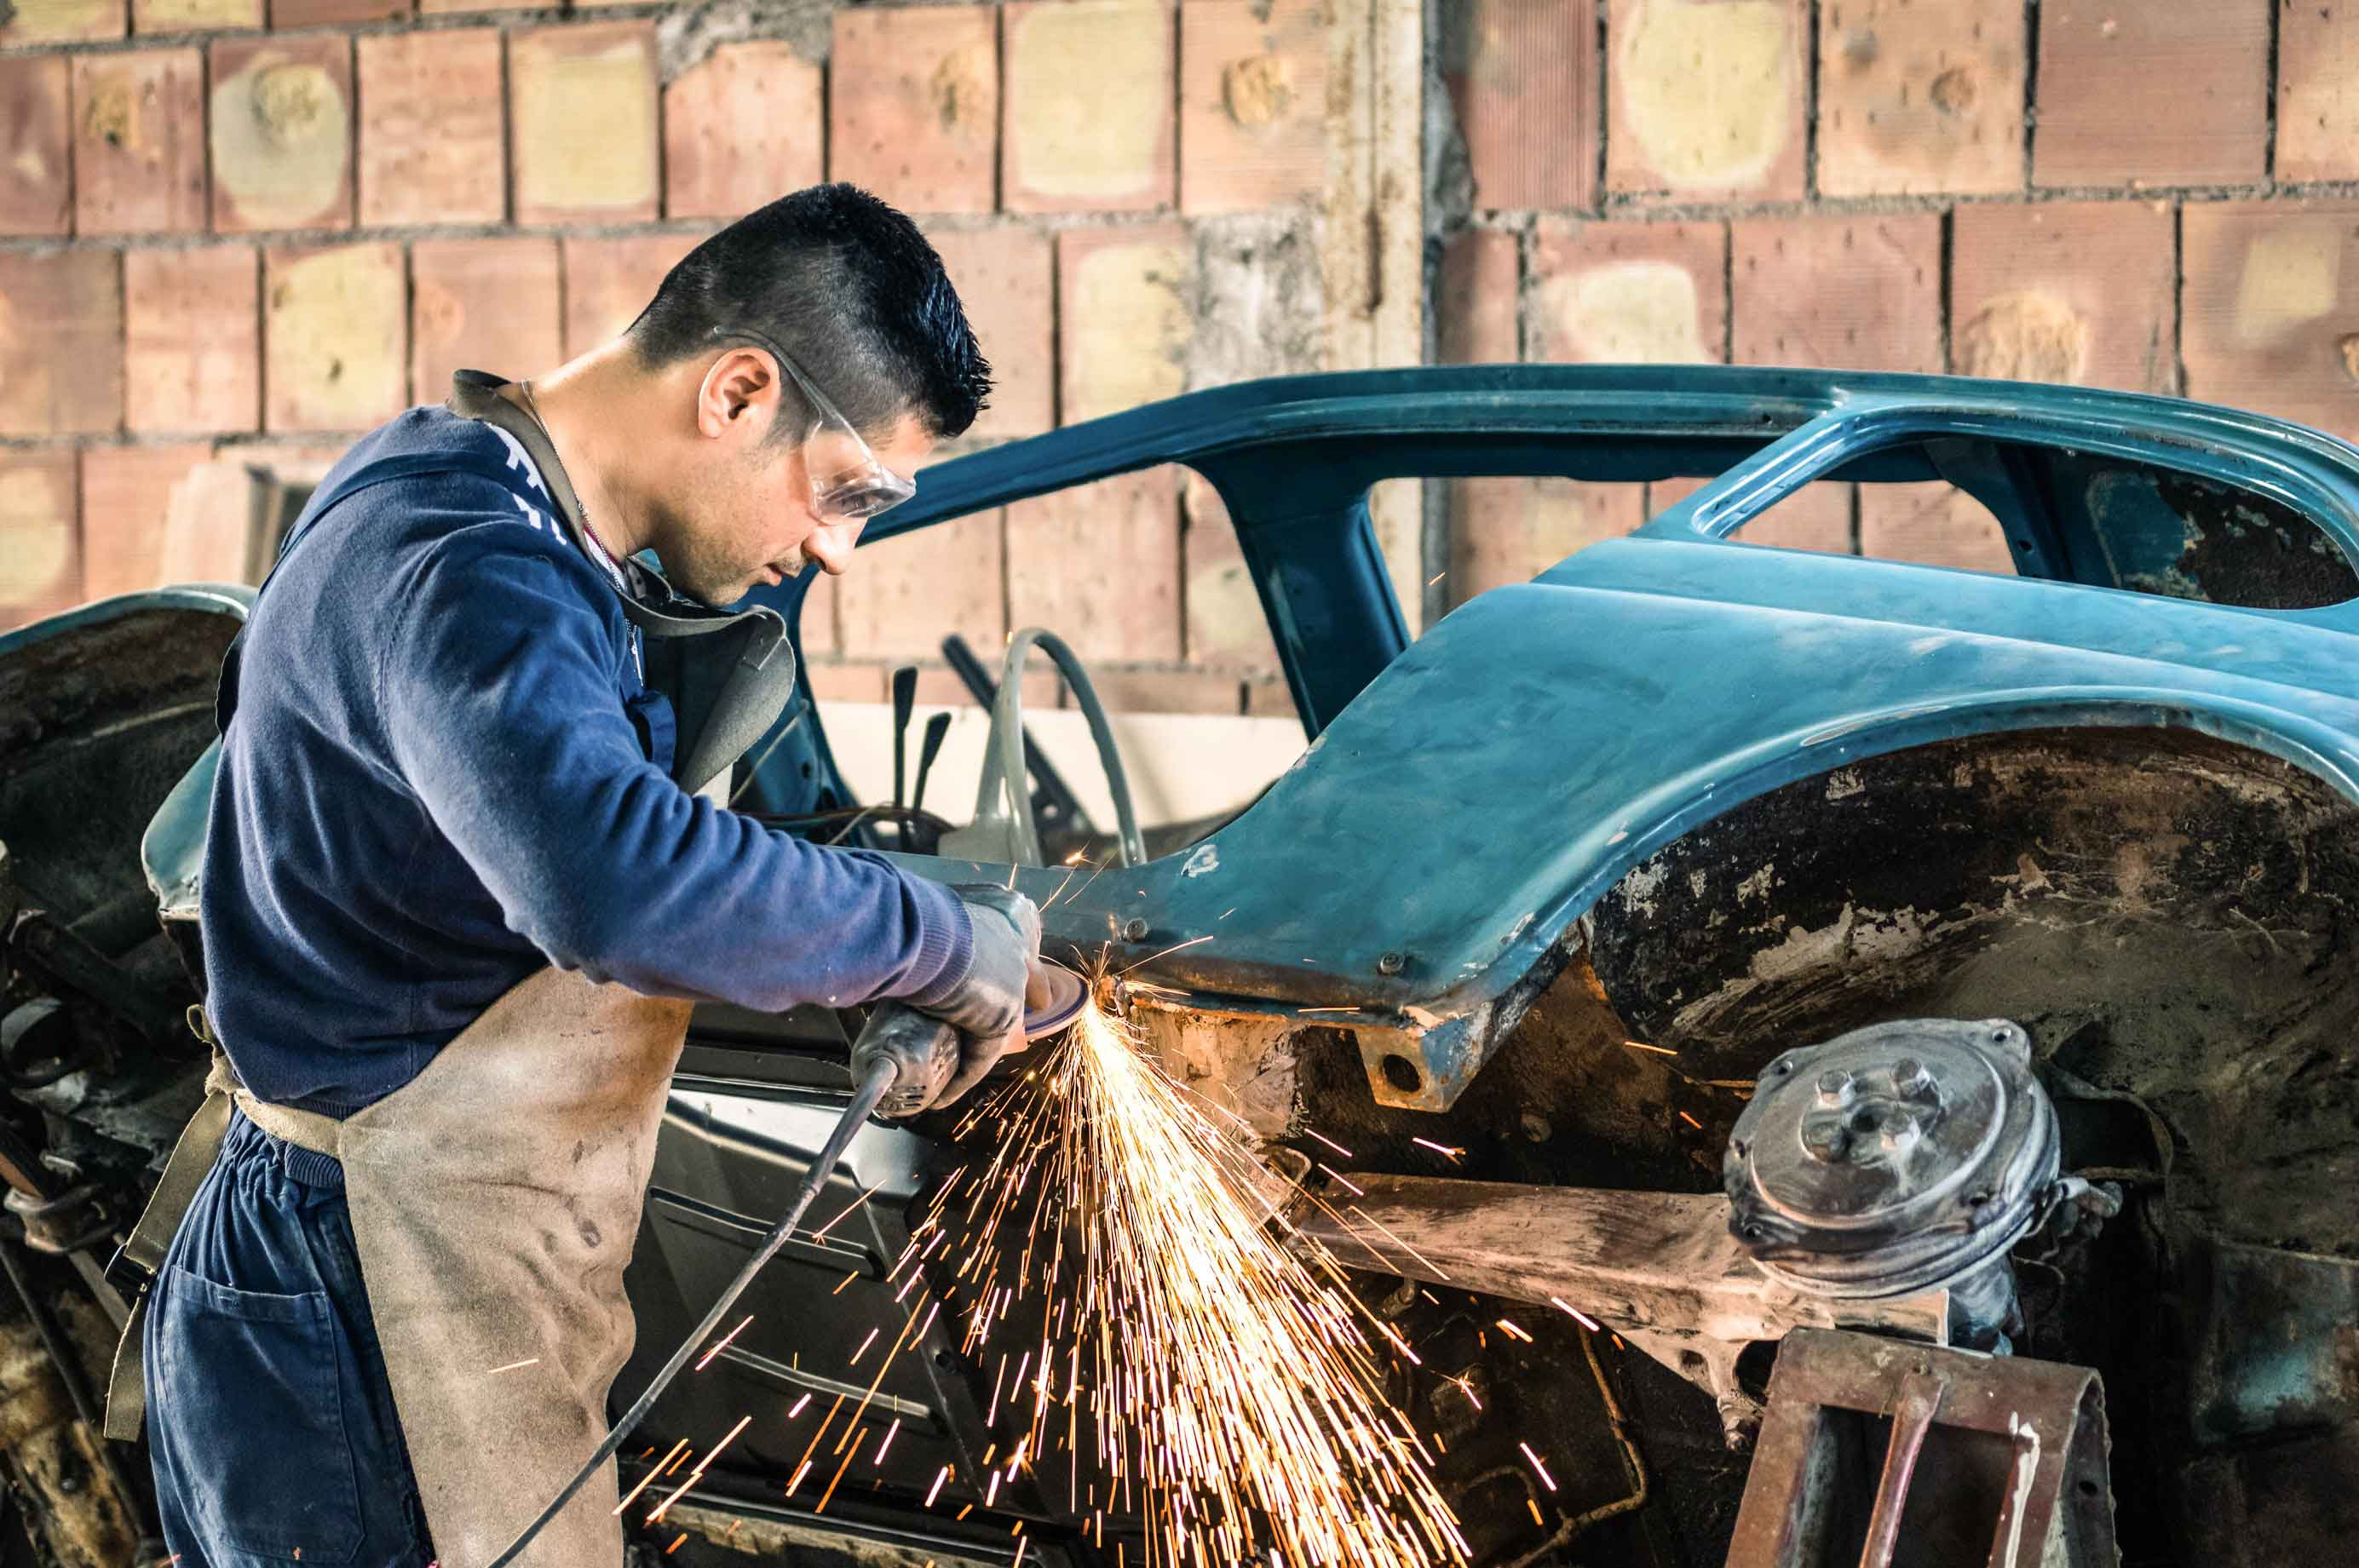 Automotive worker grinding a frame on an old car and creating sparks and dust from power tools